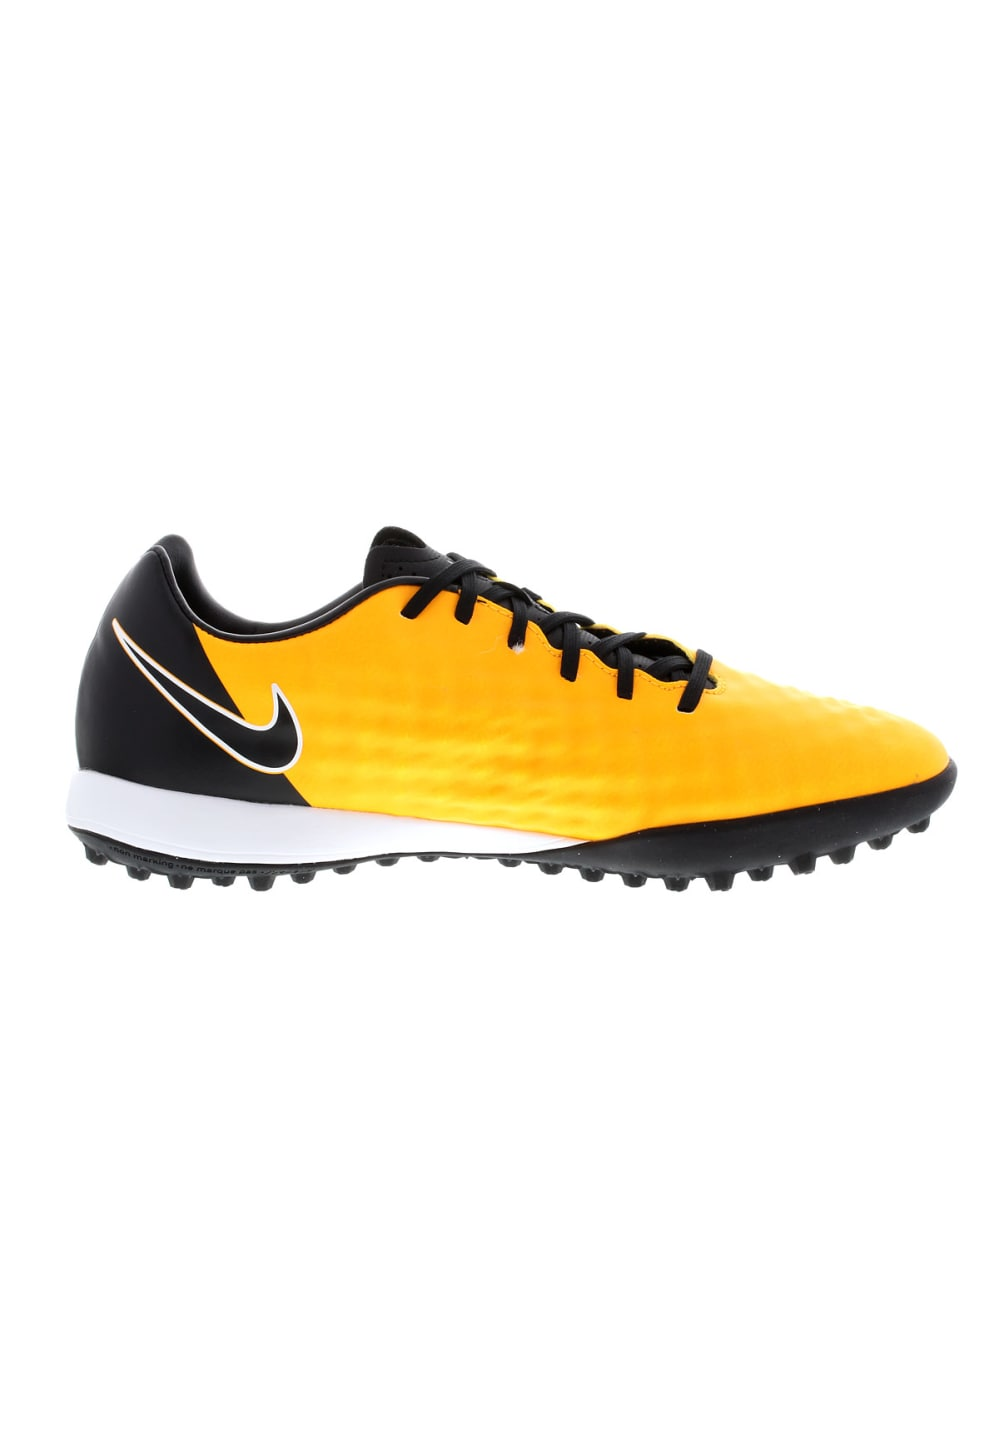 Onda Nike Ii Tf Chaussures De Pour Orange Homme Magistax Foot bf7y6g